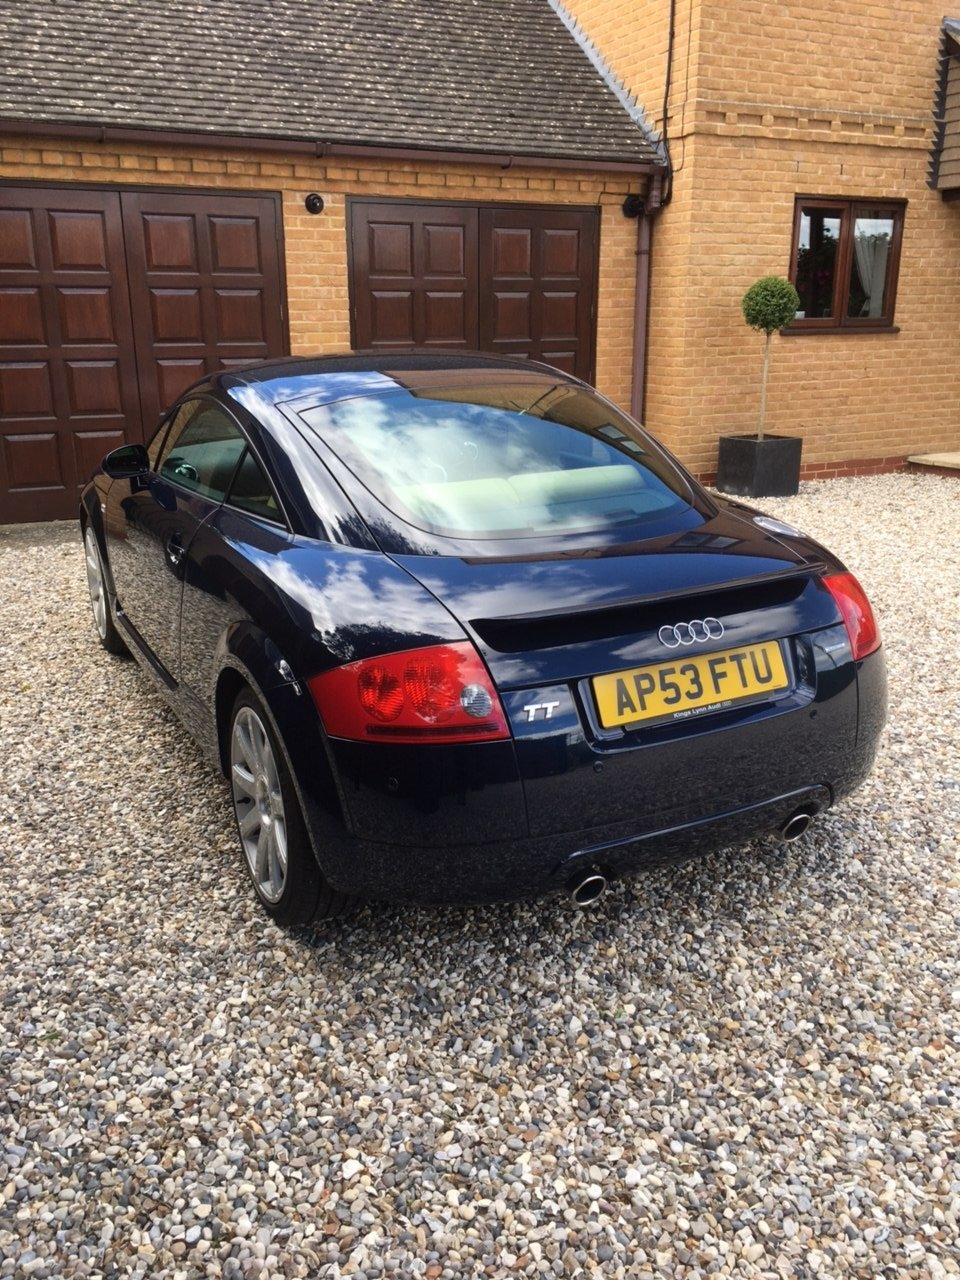 2004 Audi TT As new - dream car For Sale (picture 1 of 6)